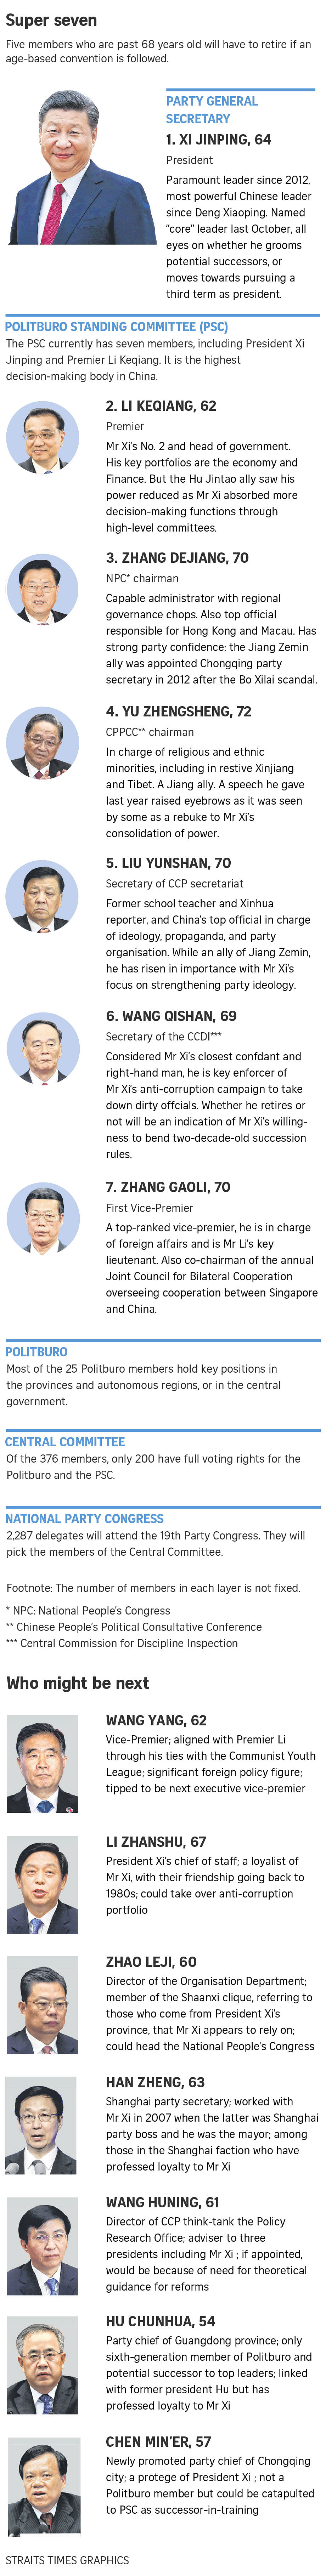 7 reasons why China's 19th Party Congress matters, East Asia News